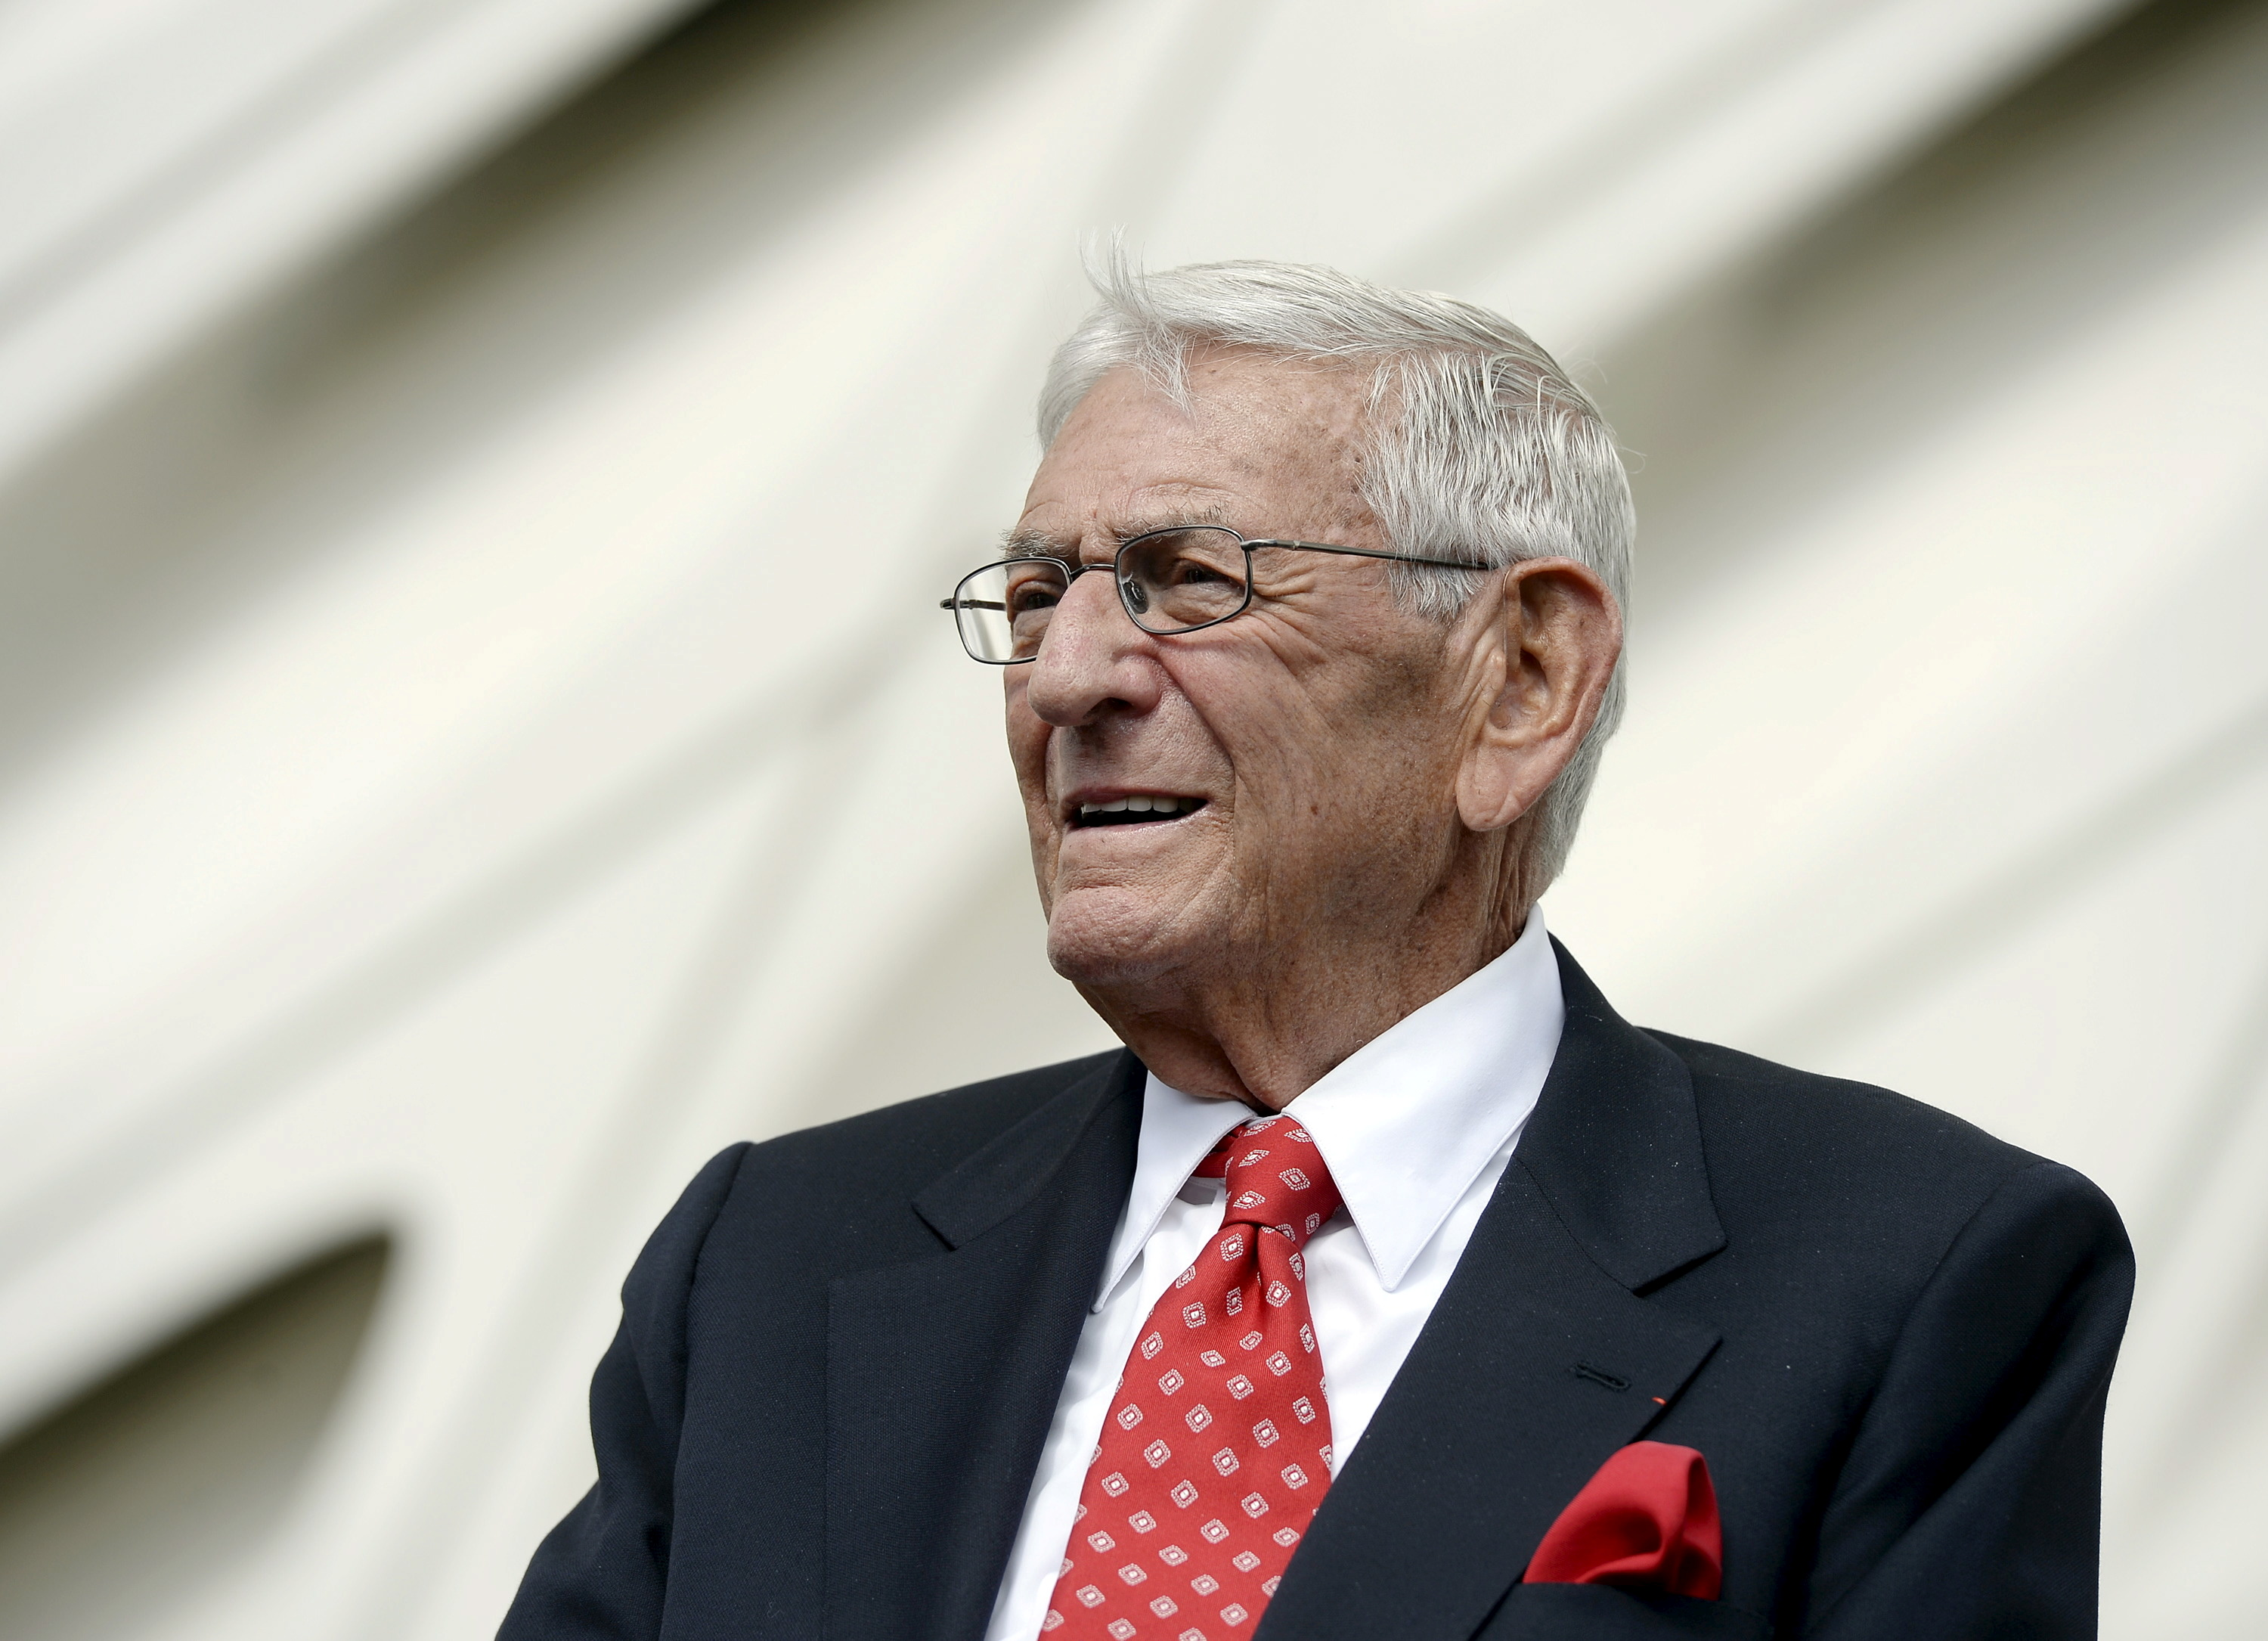 Eli Broad waits to speak during a media review of the Broad Museum in Los Angeles, California, September 16, 2015. REUTERS / Kevork Djansezian / File Photo